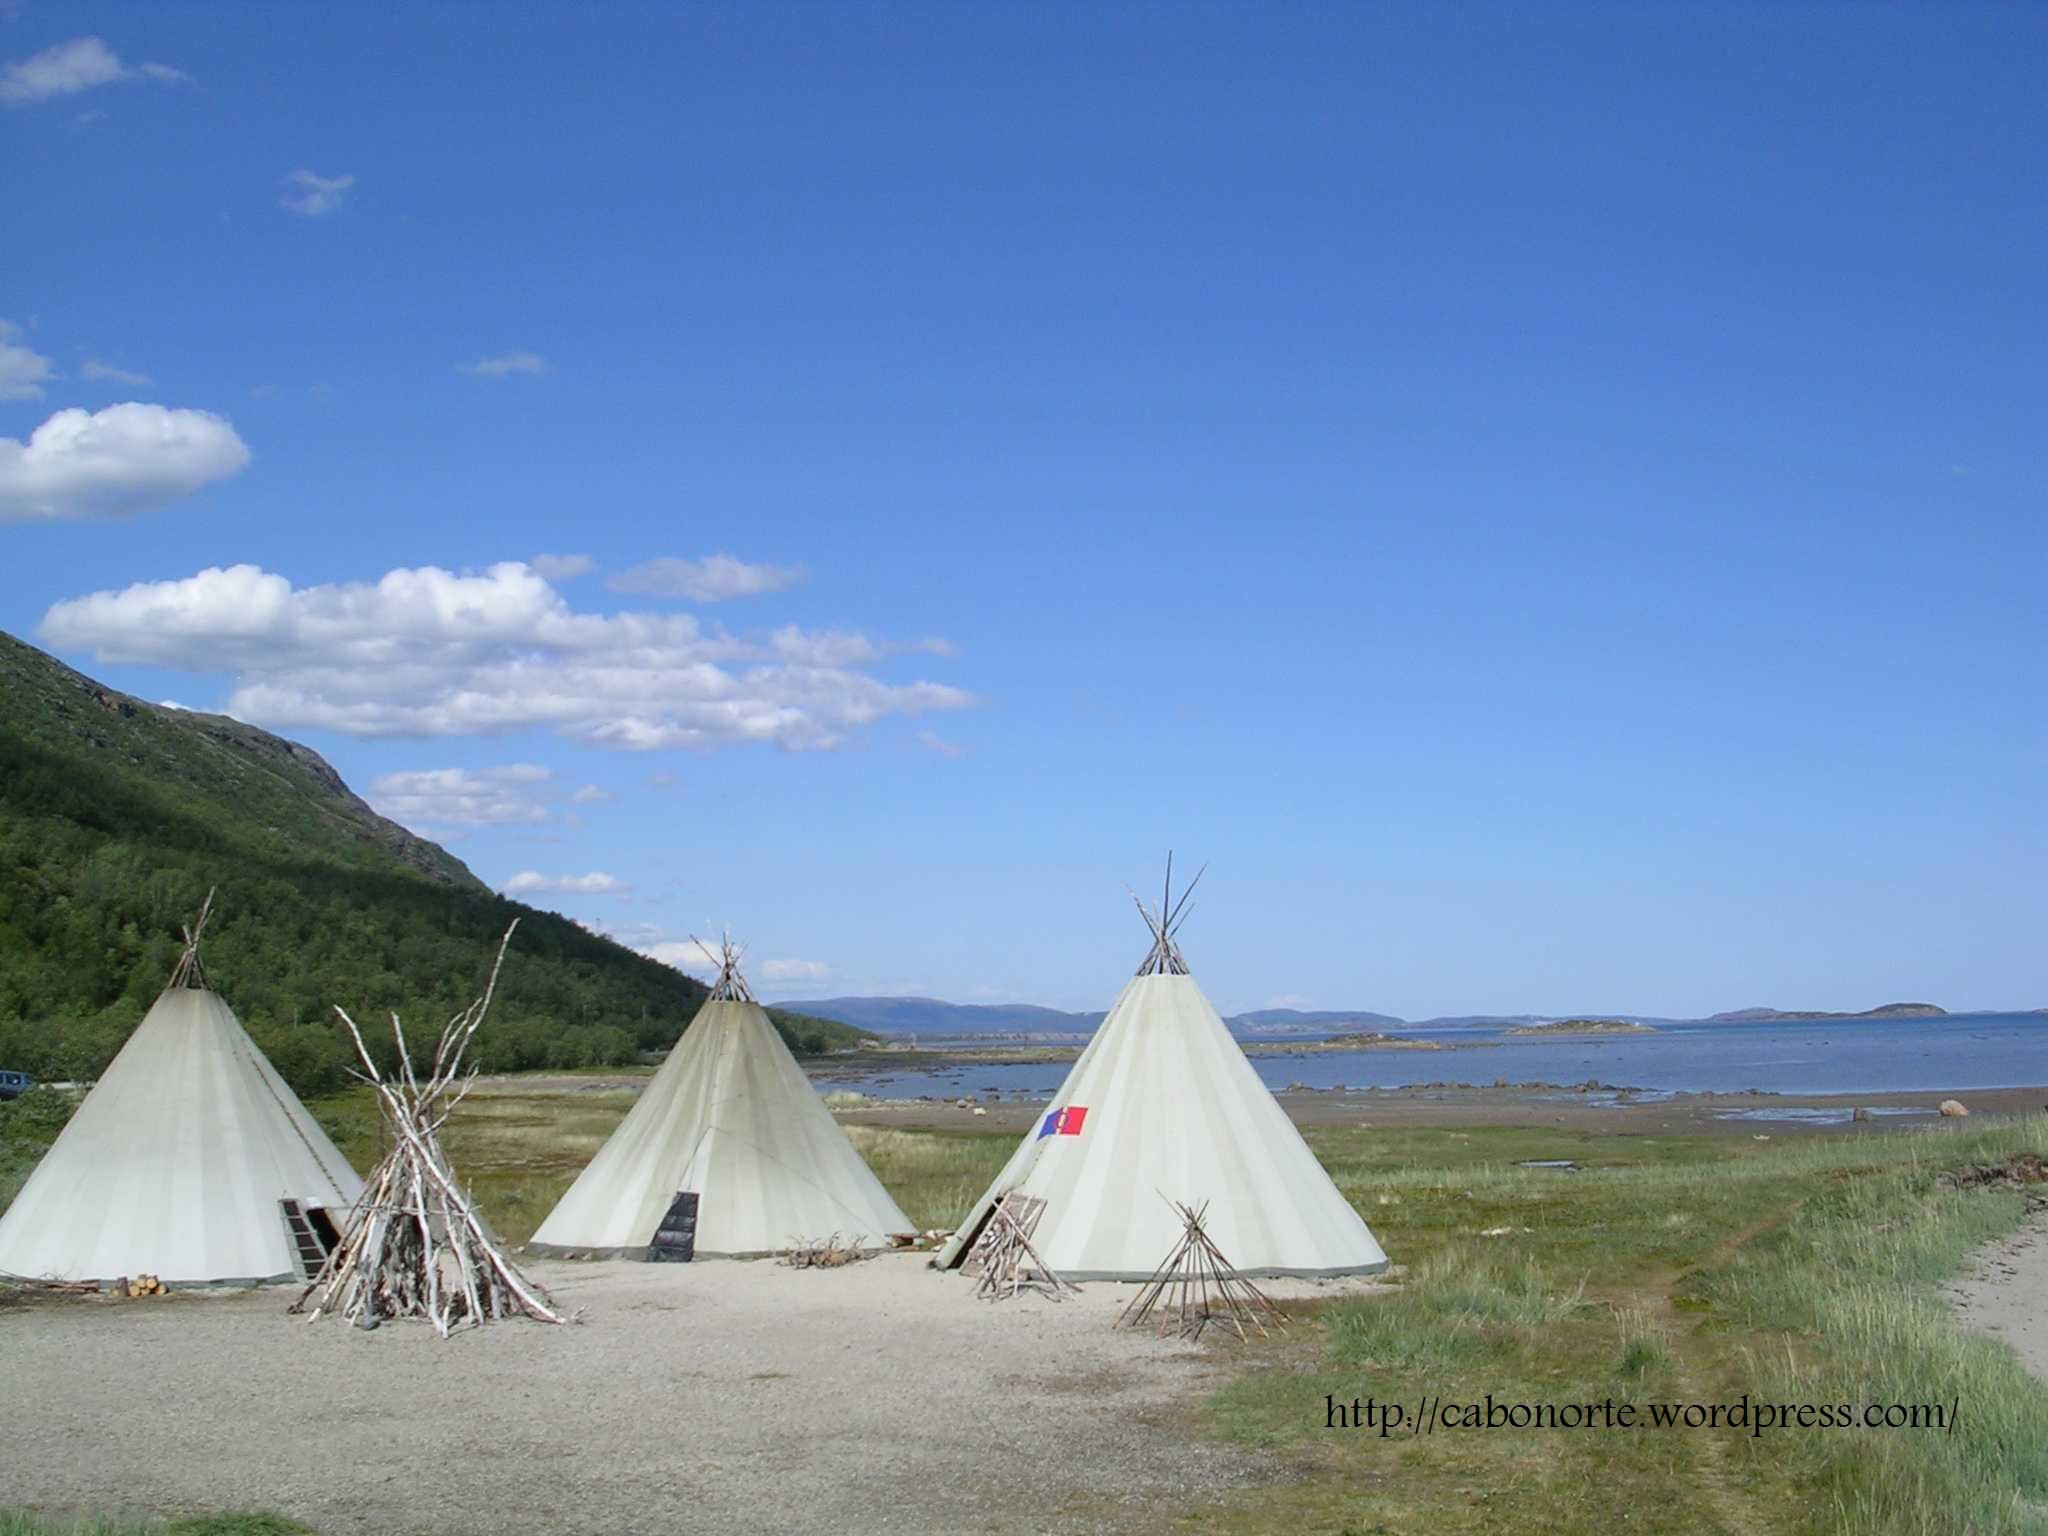 Sami tents in Porsangen Fjord, Norway